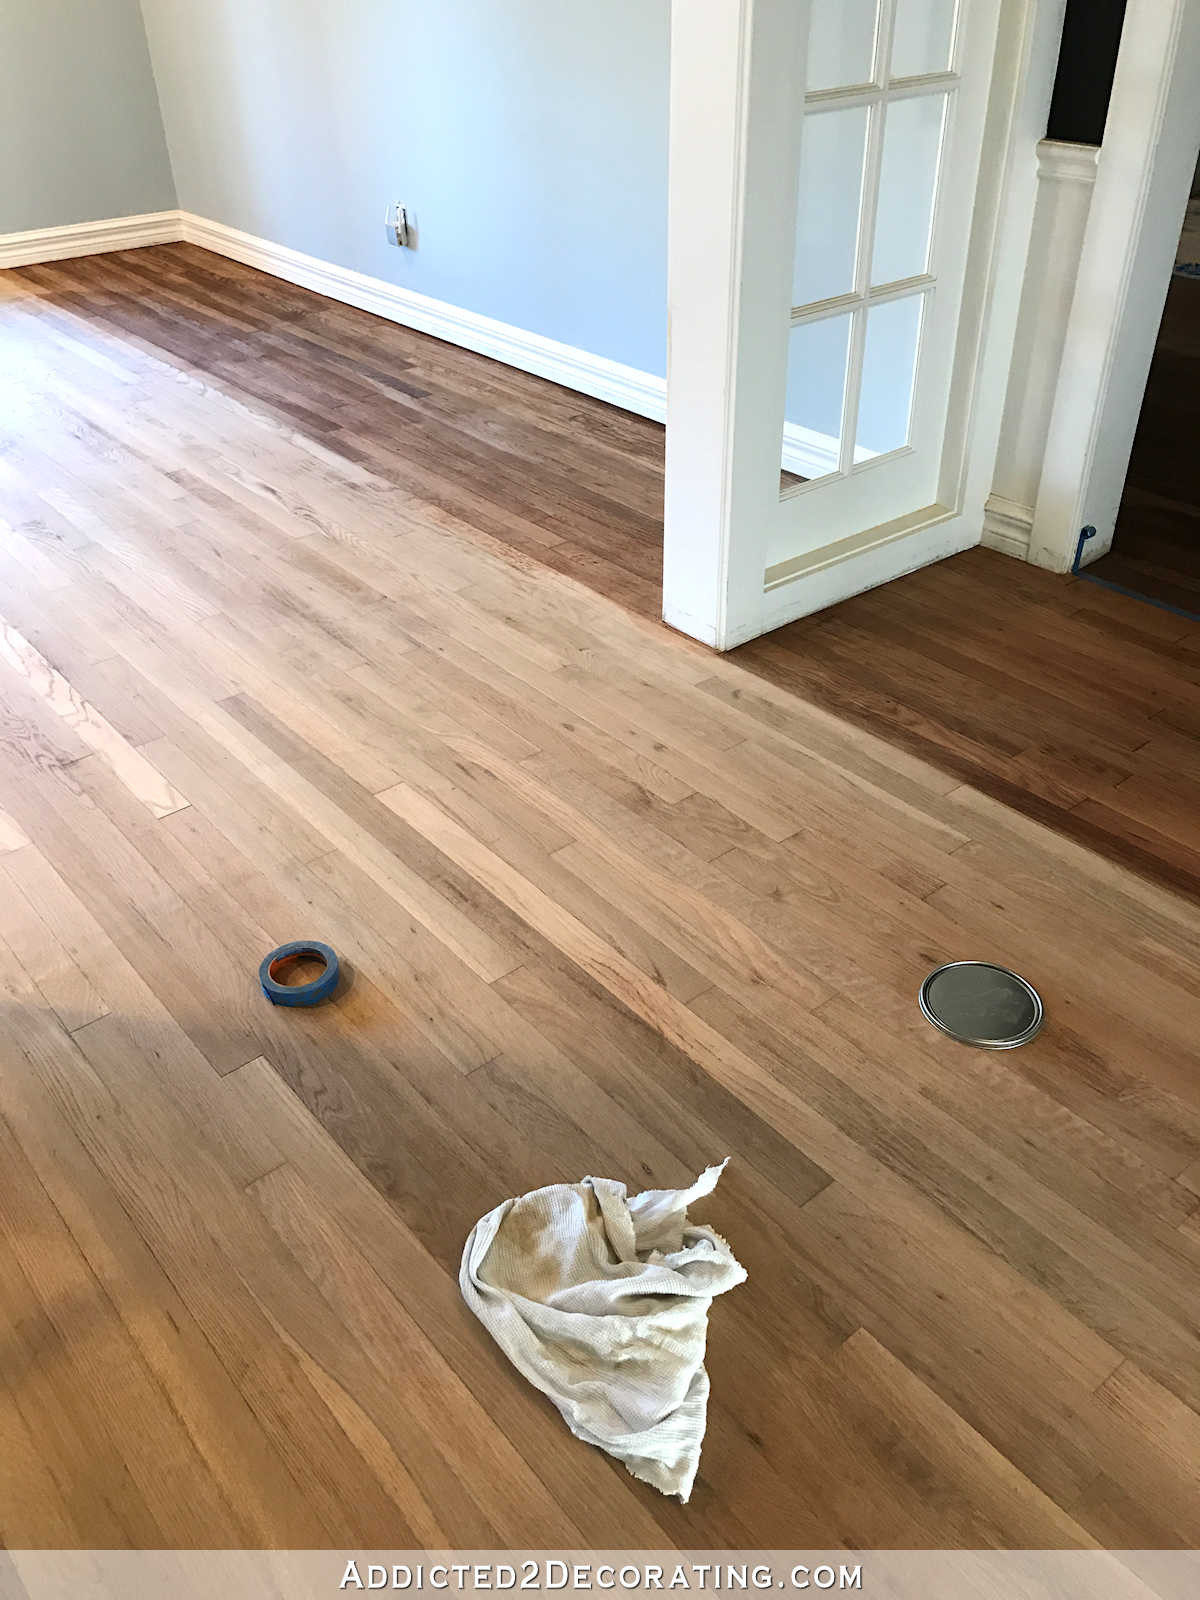 hardwood floor stain options of adventures in staining my red oak hardwood floors products process in staining red oak hardwood floors 3 entryway and music room